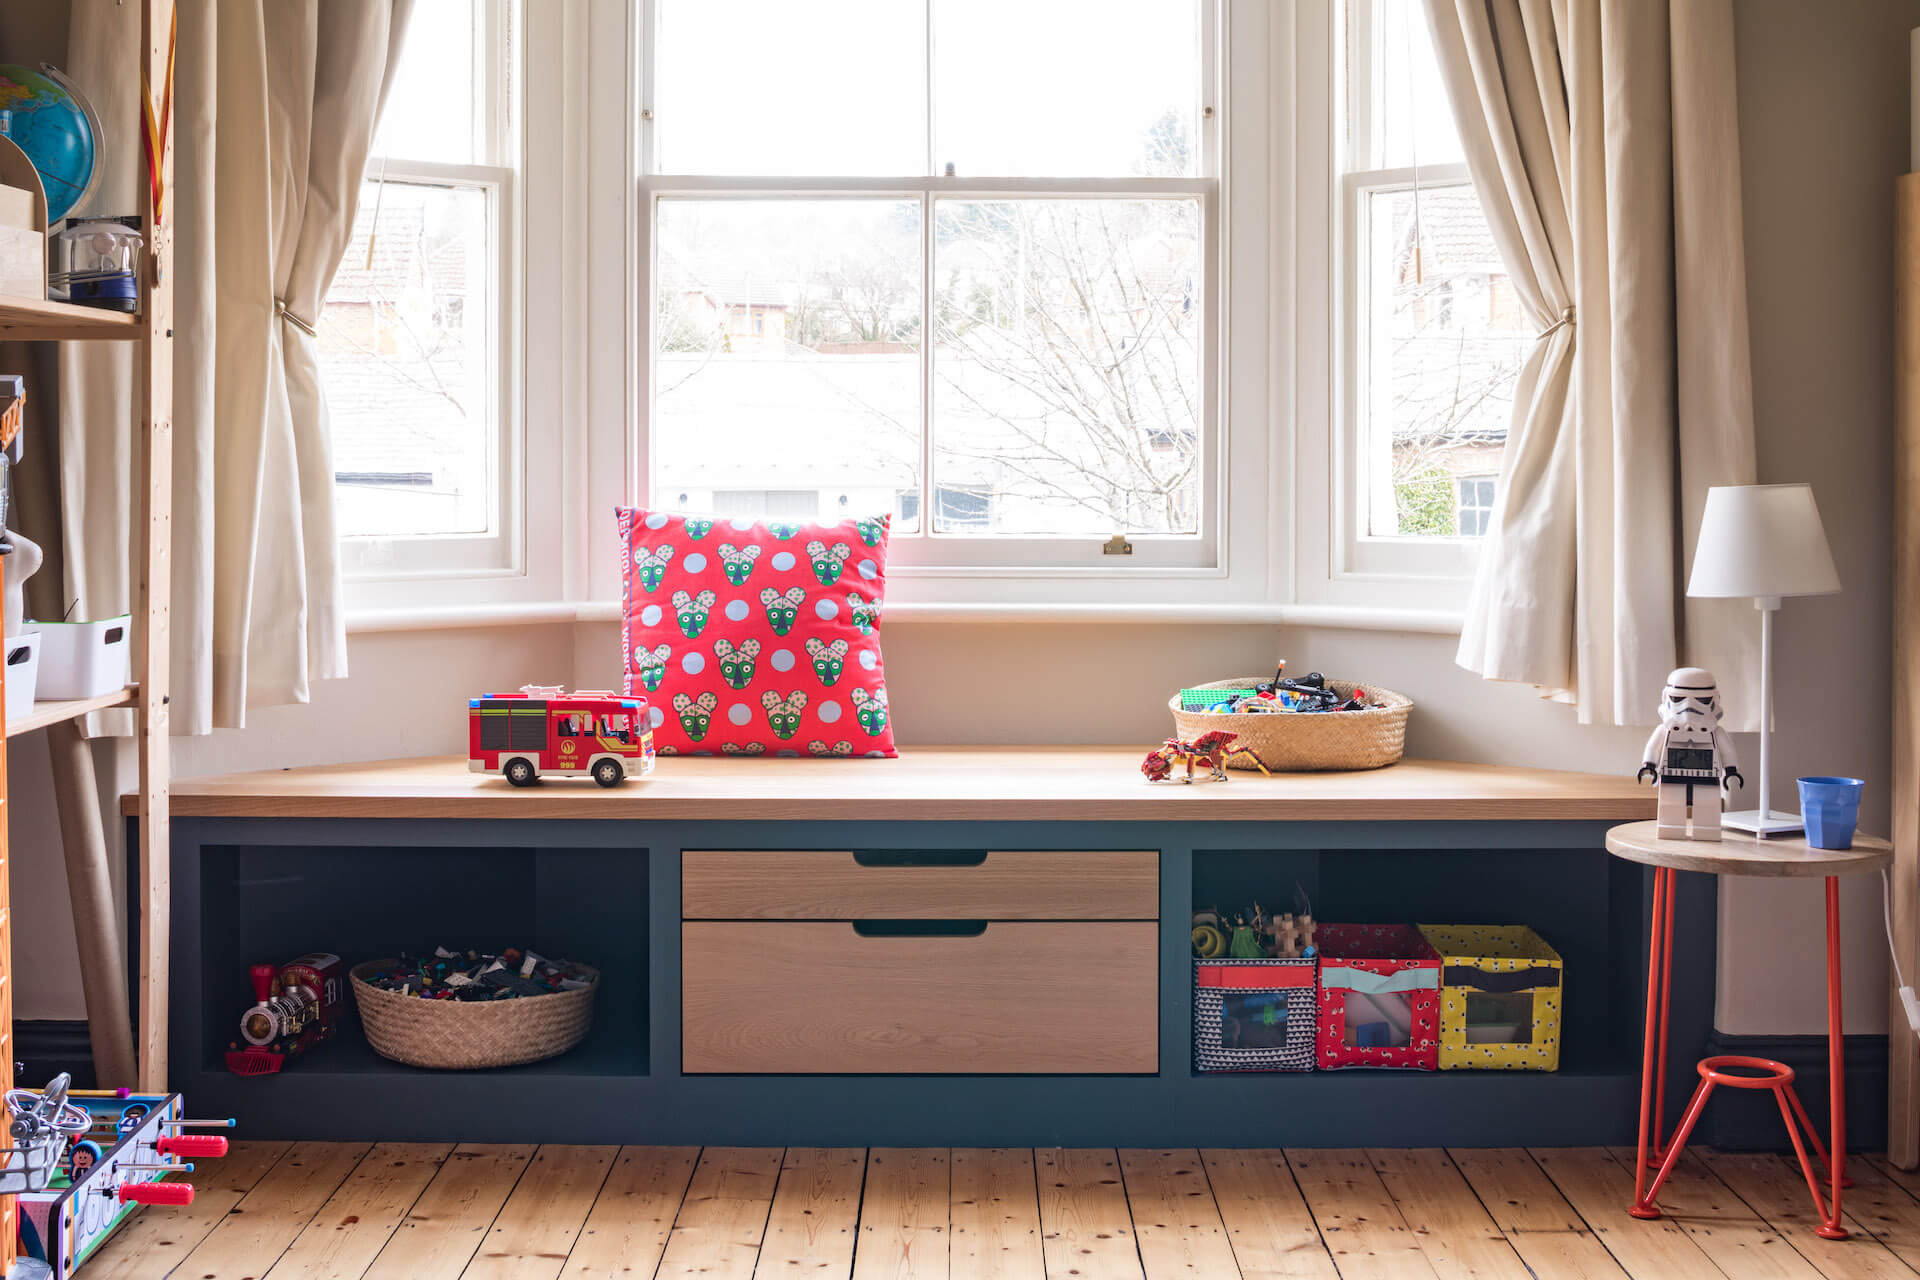 Alcove Storage bespoke window seat and storage for childs bedroom